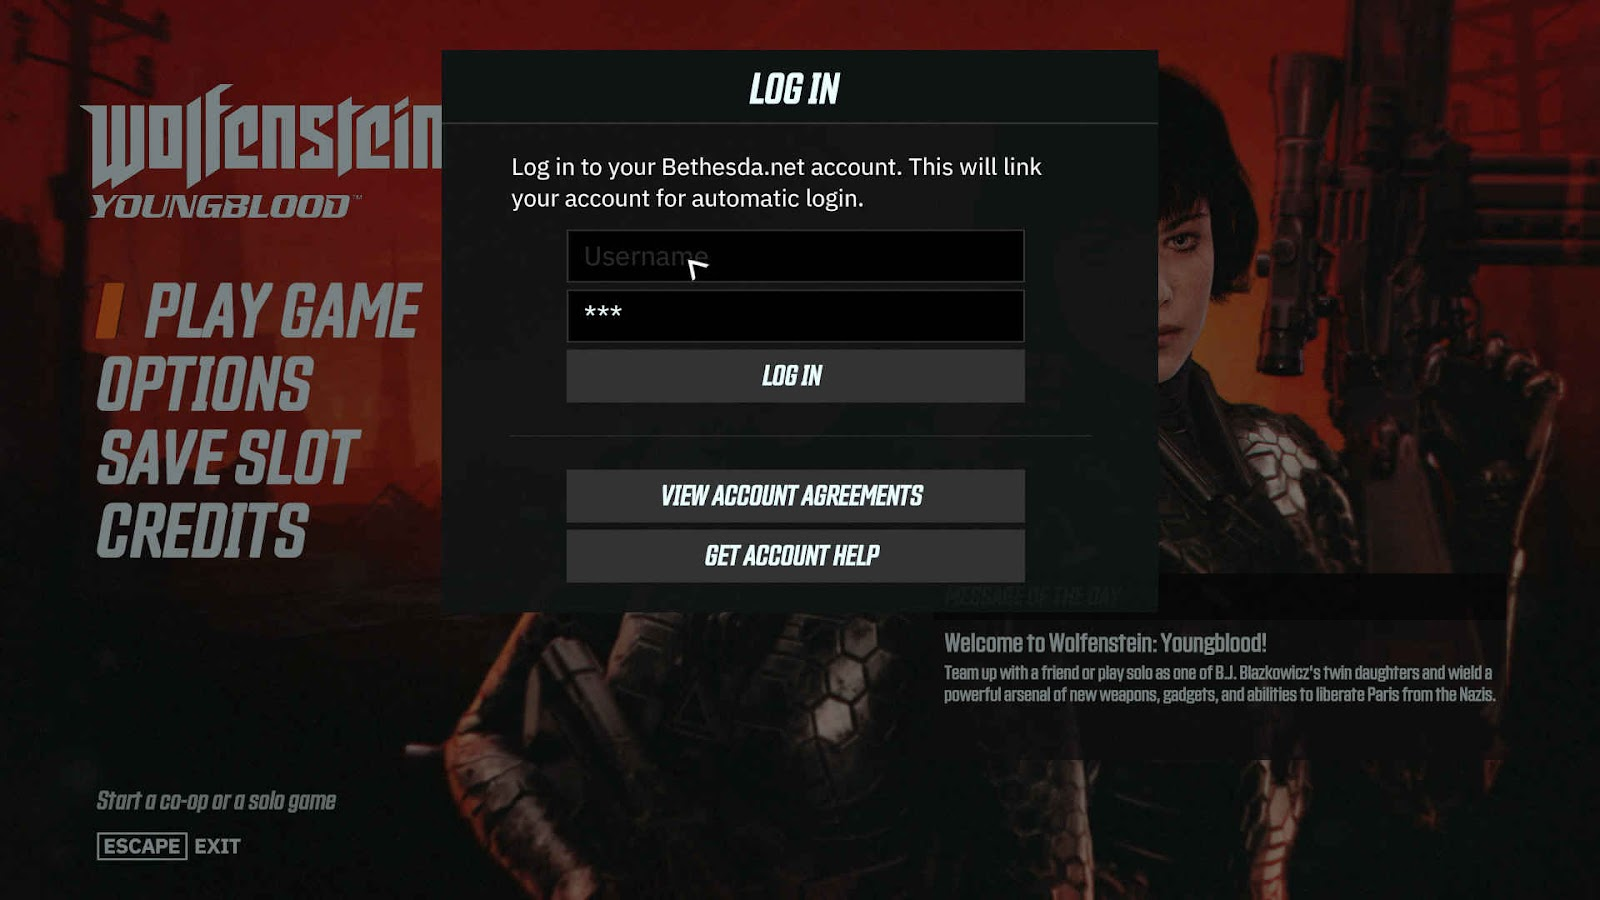 Main screen waiting for the player to enter Bethesda.net account info